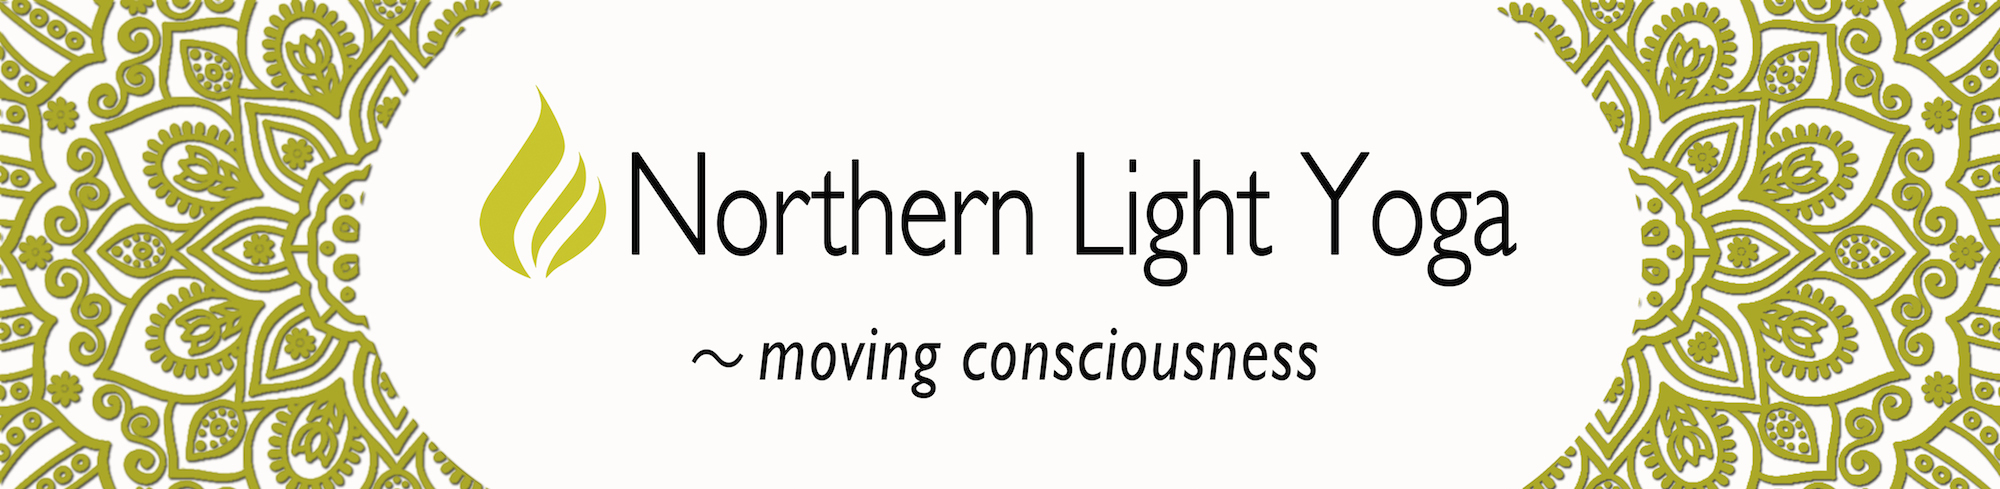 northern light yoga oslo